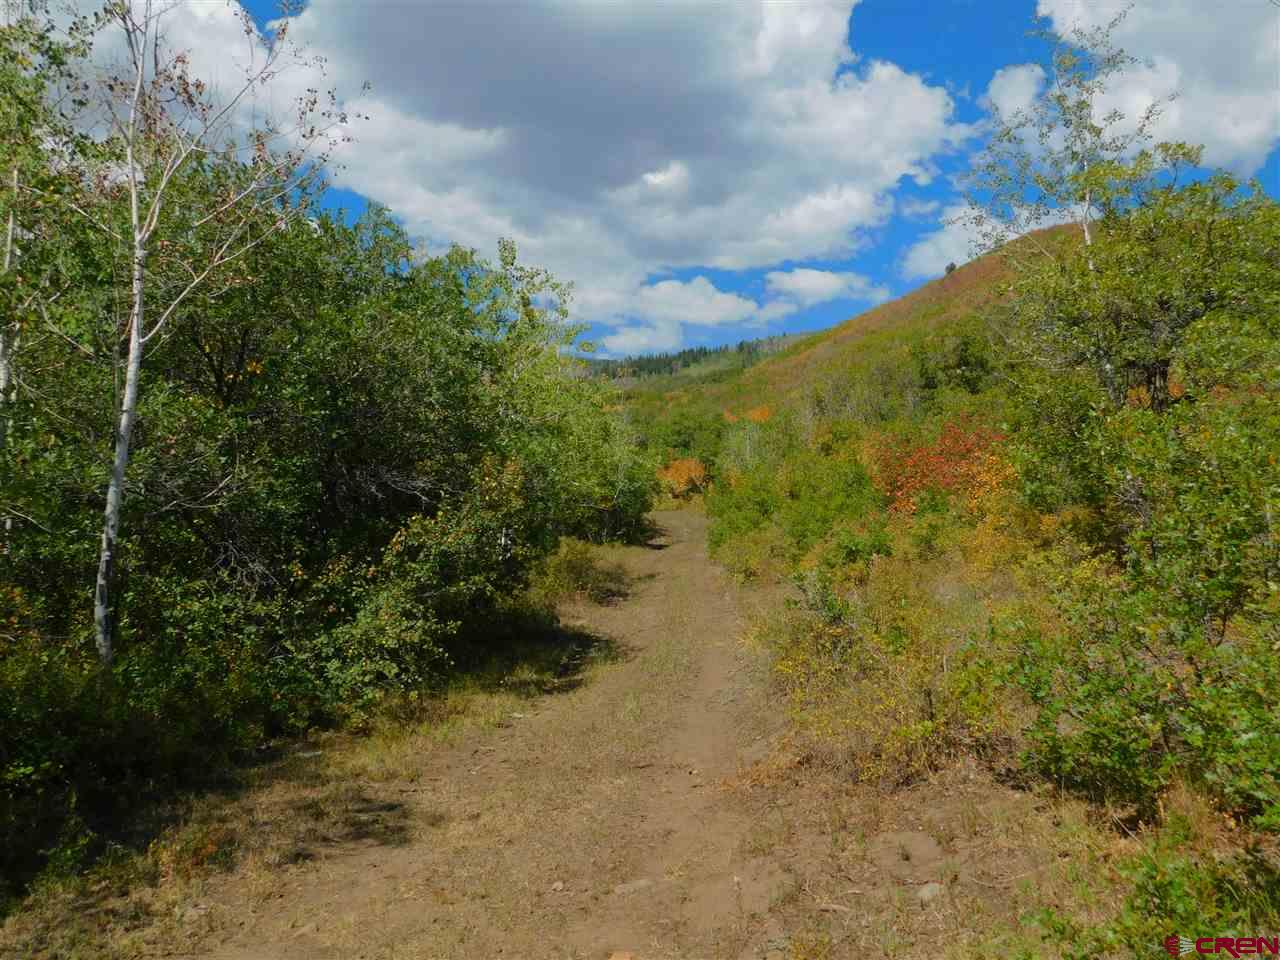 35 acre mountain property.  Live water with Ward creek and Orchard city ditch running through the property.  End of the road location.  Great views of the valley below.  Forest access.  Subdivision has private roads and Locked gate. Two lots available (lot 6 and 12).